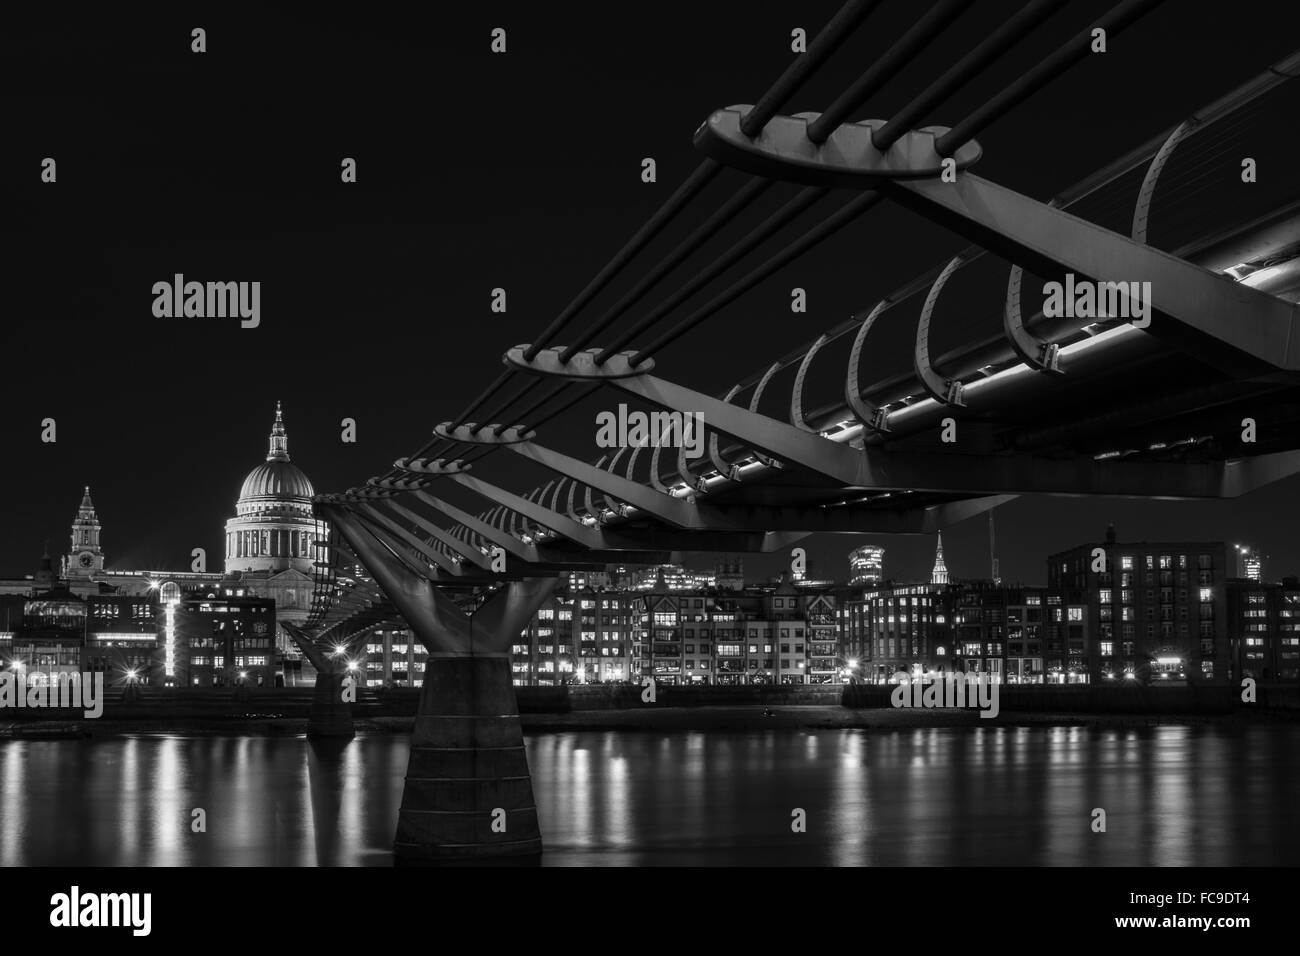 London Black and White urban photography: cityscape of Millennium Bridge, St. Paul's Cathedral and River Thames at night. Stock Photo